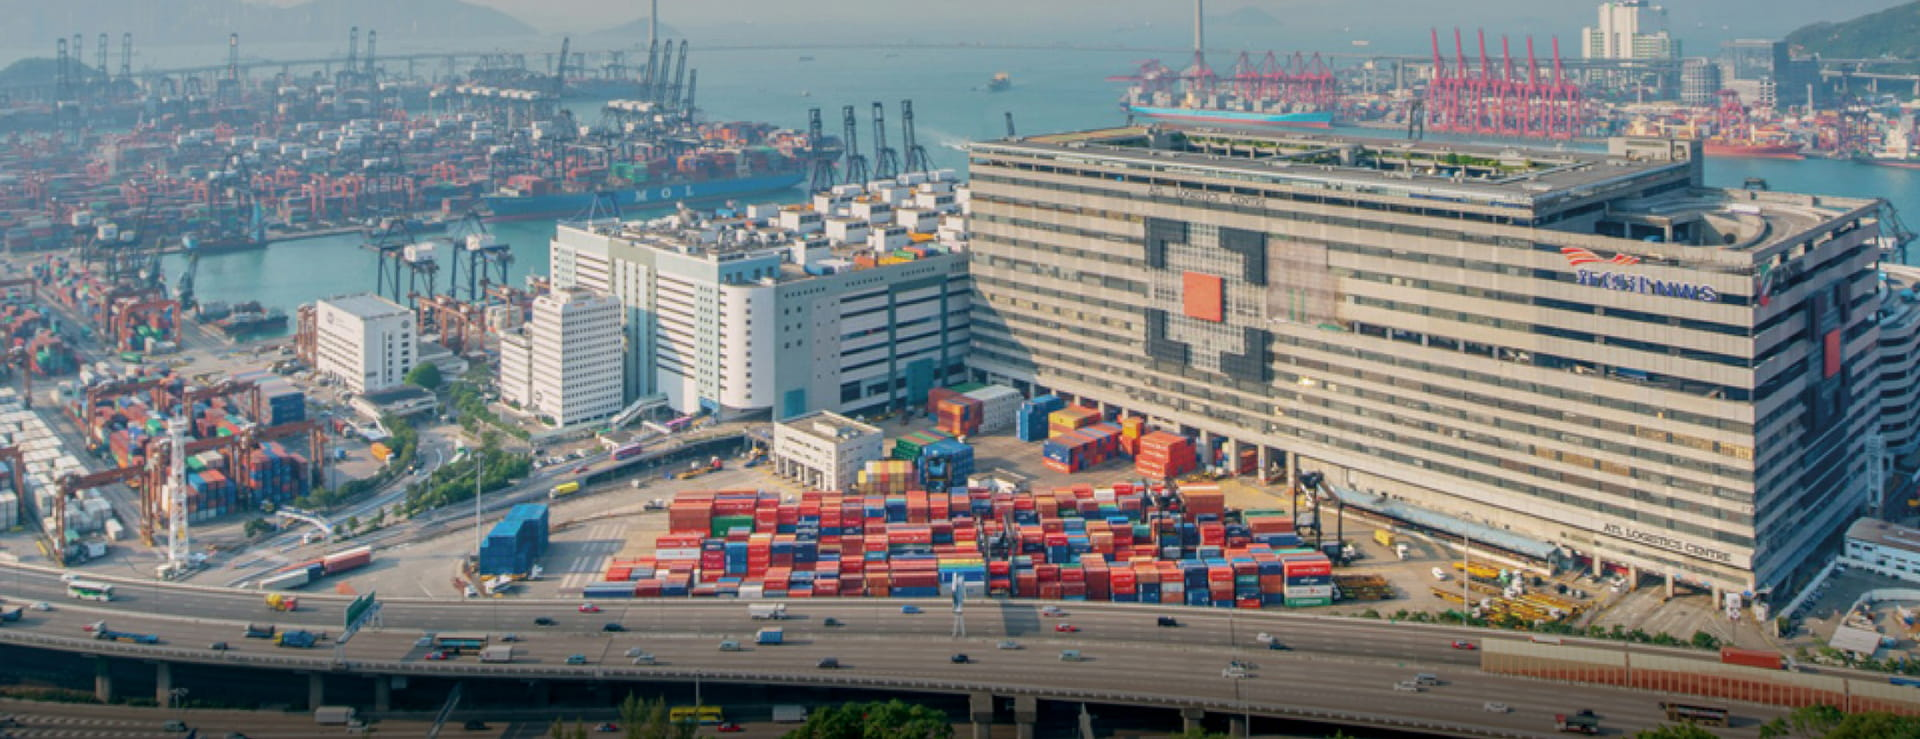 Goodman-Hong-Kong-ATL-Logistics-blue-sky-container-terminal